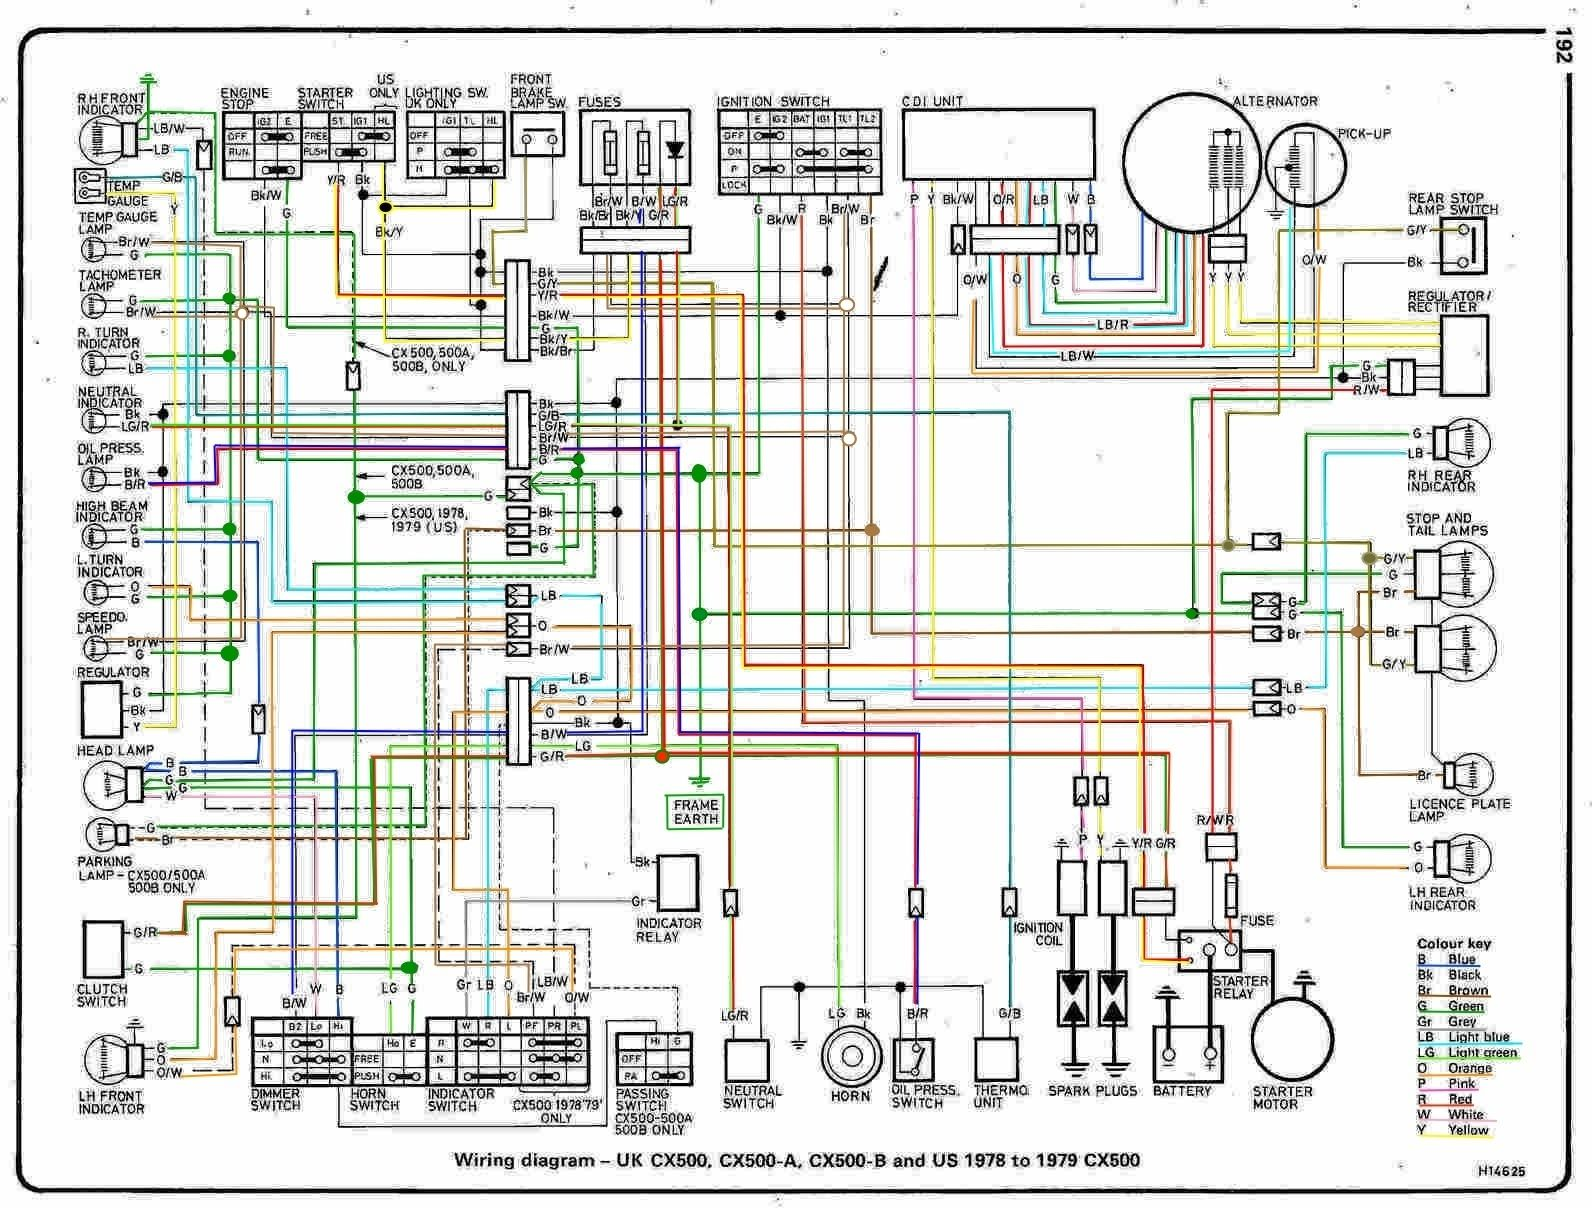 Wiring Diagram 81 Honda Cx500 | Wiring Diagram on lighting diagrams, pinout diagrams, motor diagrams, honda motorcycle repair diagrams, transformer diagrams, sincgars radio configurations diagrams, switch diagrams, engine diagrams, electrical diagrams, hvac diagrams, troubleshooting diagrams, electronic circuit diagrams, gmc fuse box diagrams, friendship bracelet diagrams, snatch block diagrams, internet of things diagrams, series and parallel circuits diagrams, battery diagrams, led circuit diagrams, smart car diagrams,